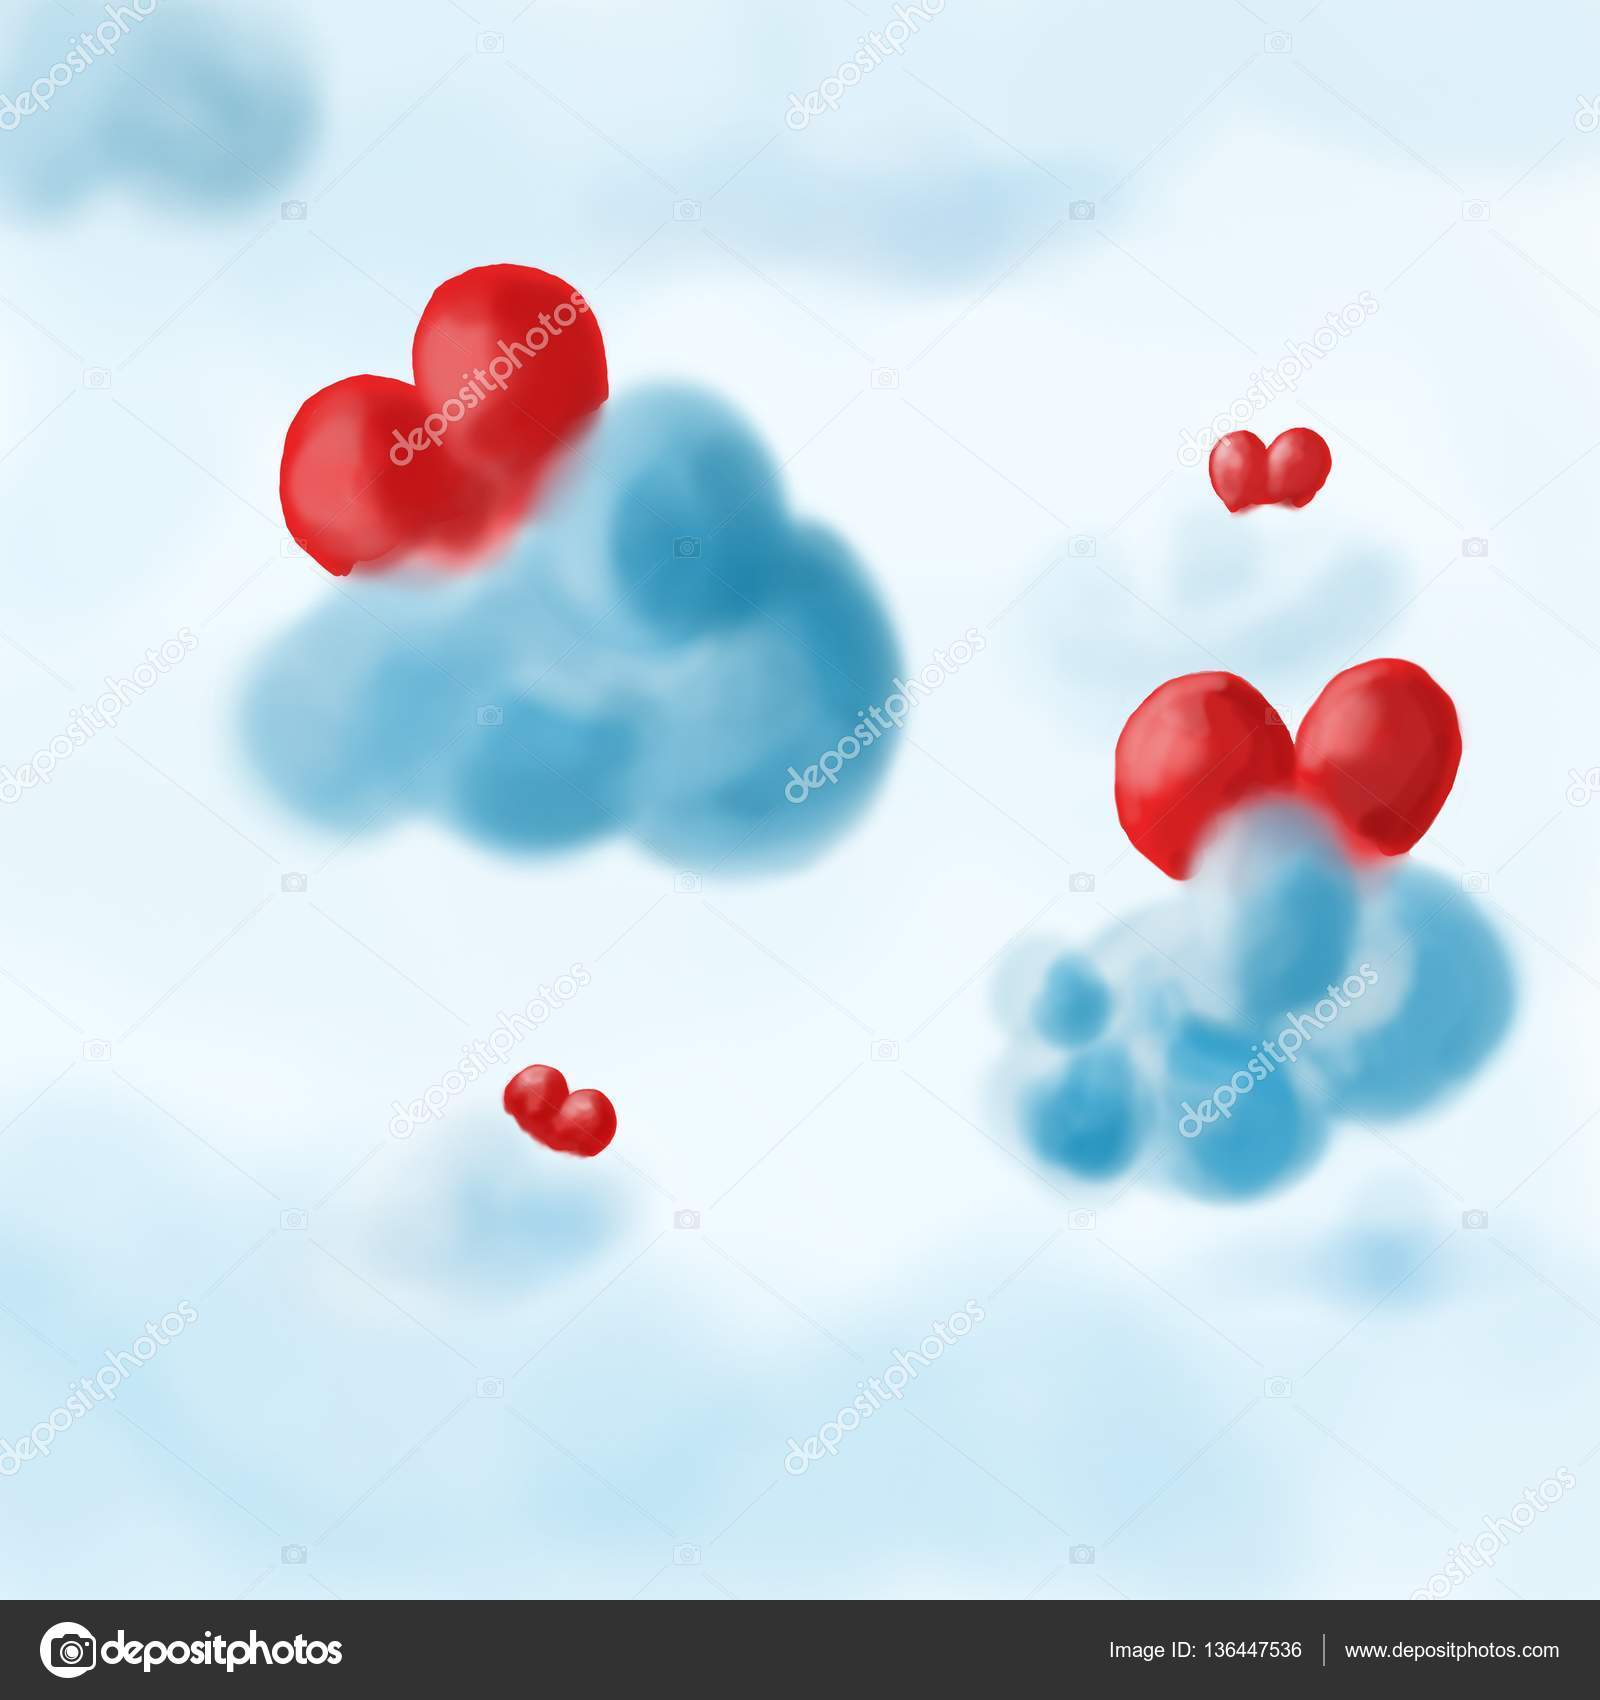 heart in clouds — stock photo © malycka #136447536